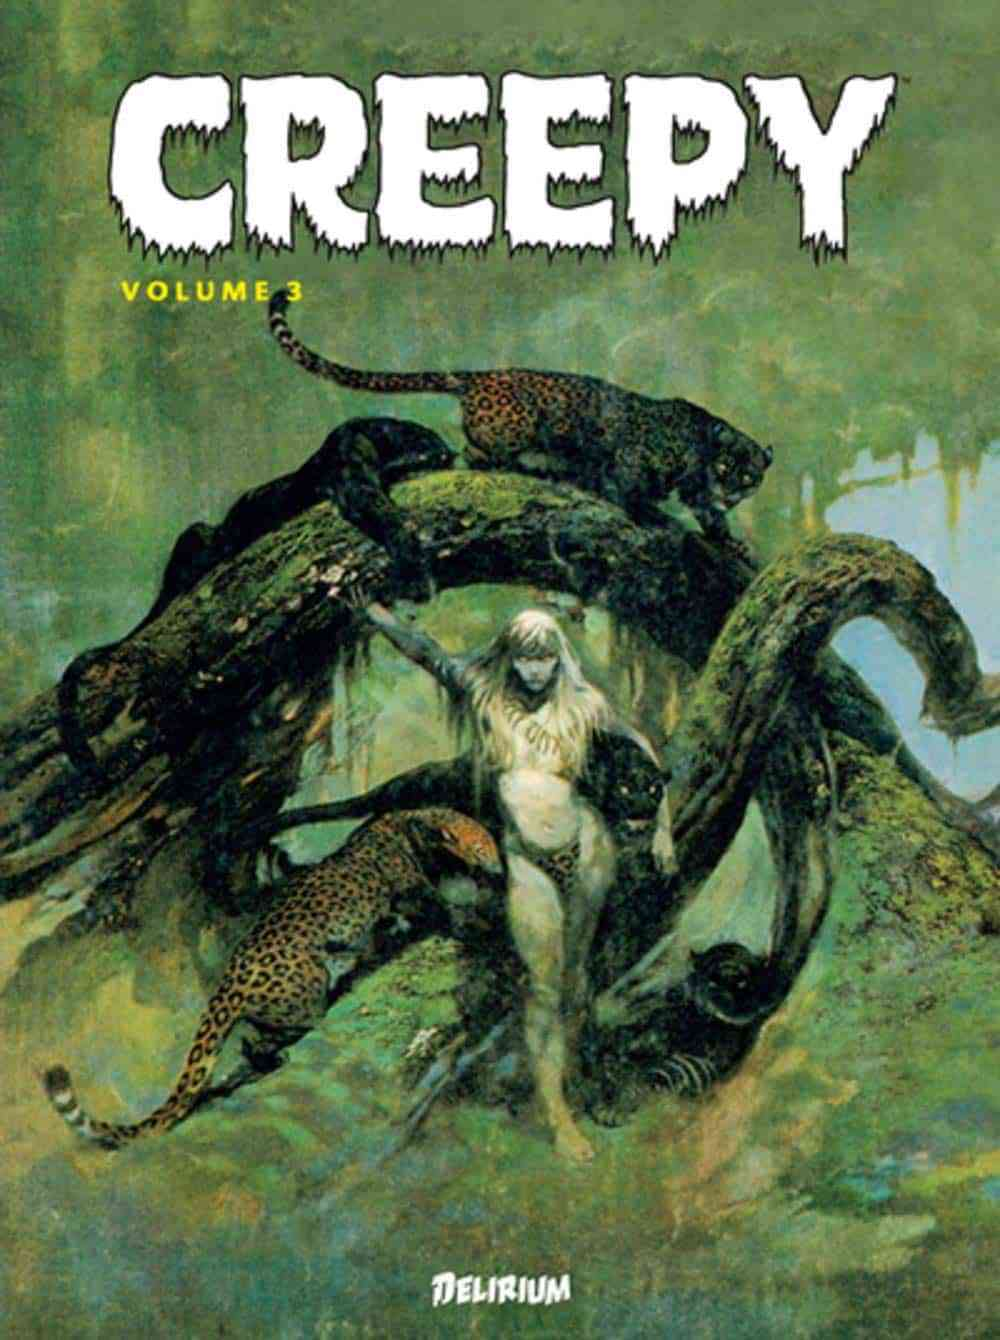 Creepy volume 3, horreur vintage